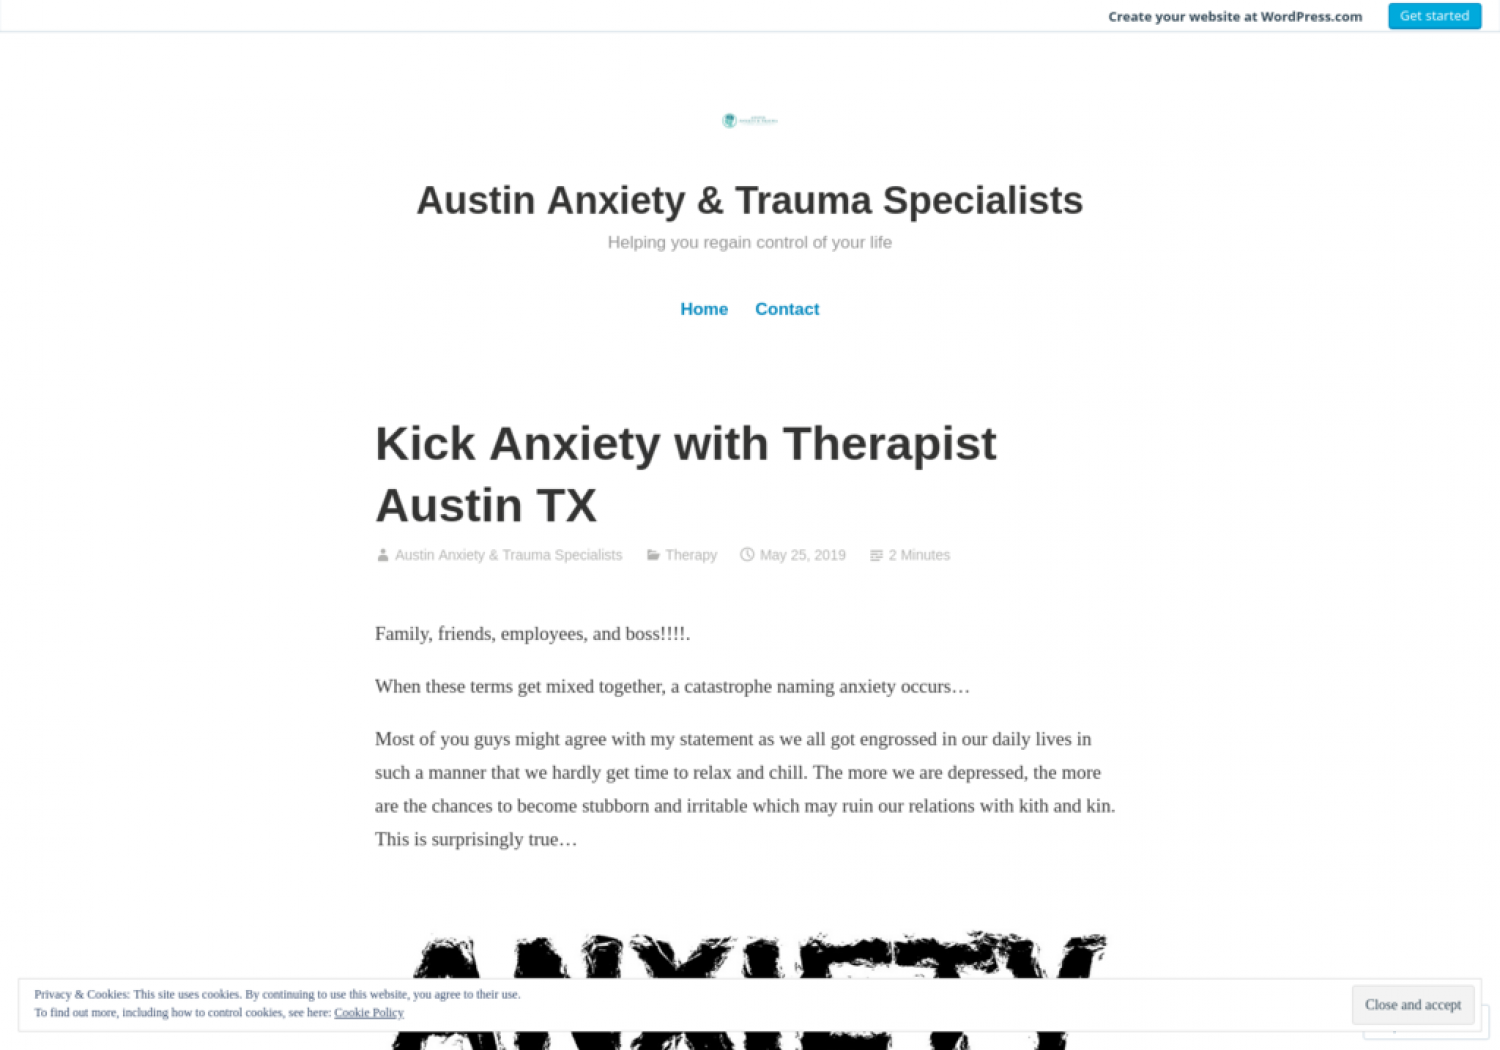 Kick Anxiety with Therapist Austin TX Infographic